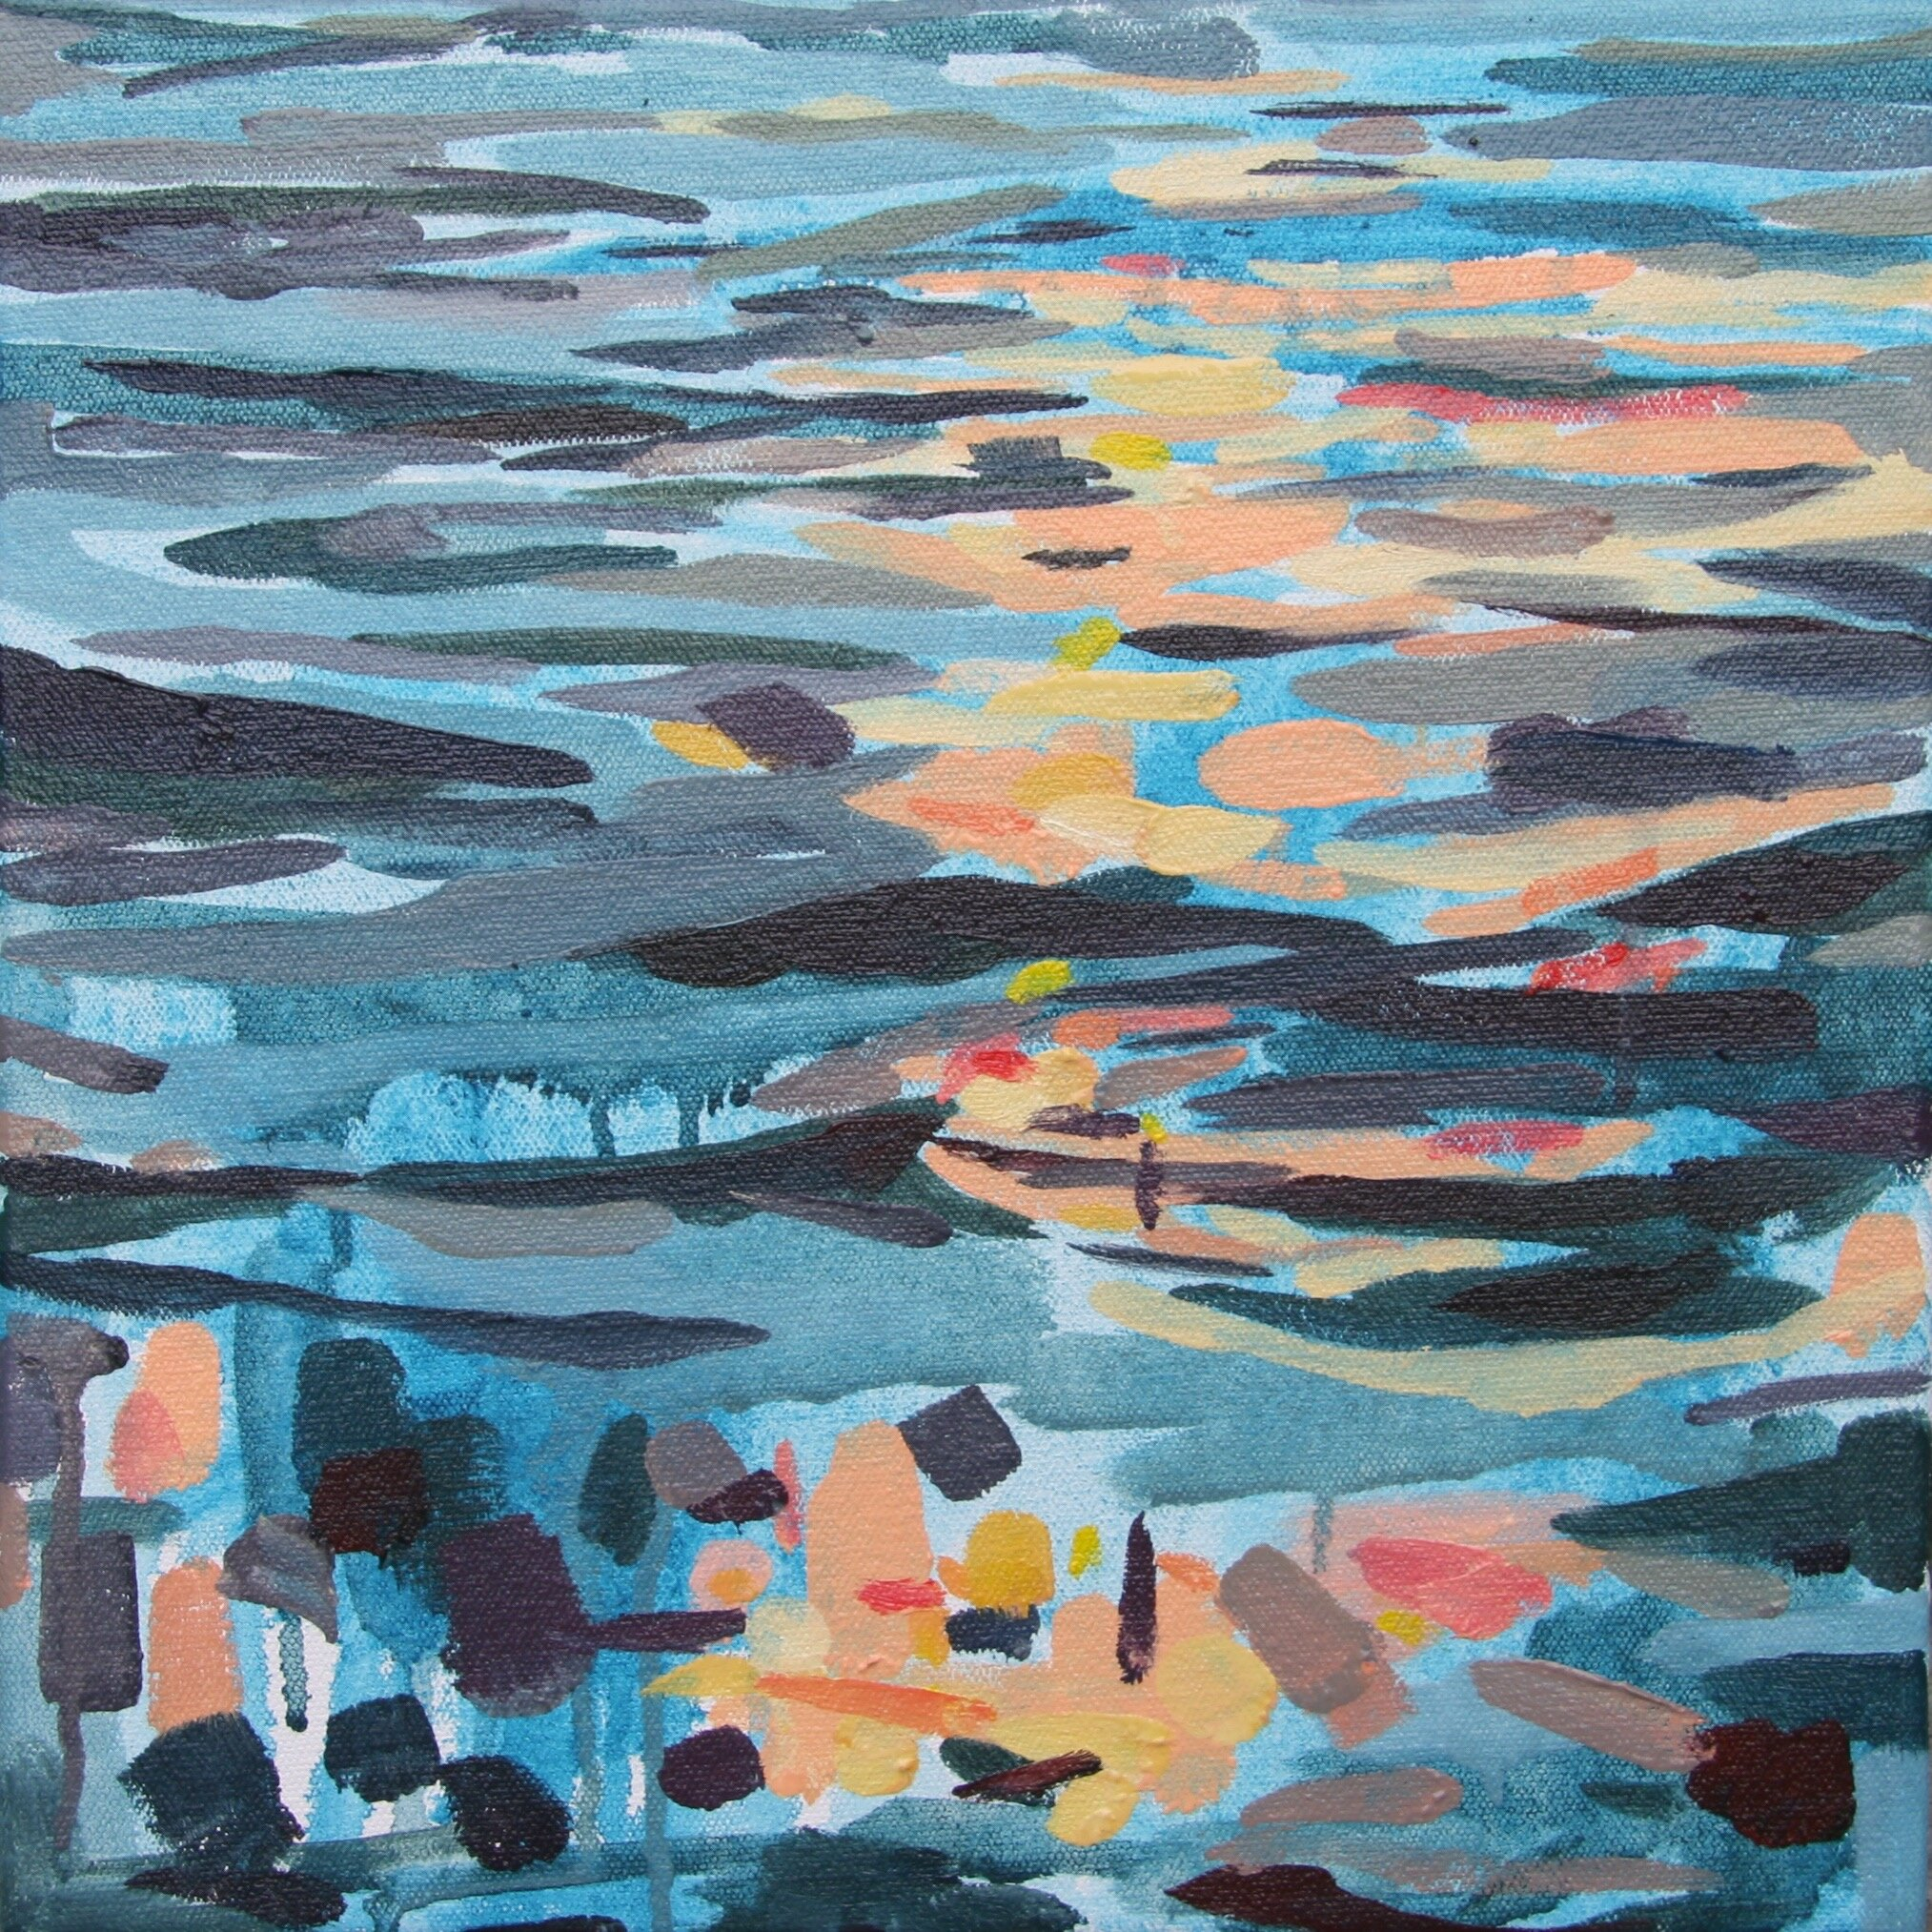 """'Sundance'  2014  12"""" x 12""""  water soluble oil on canvas  sold"""